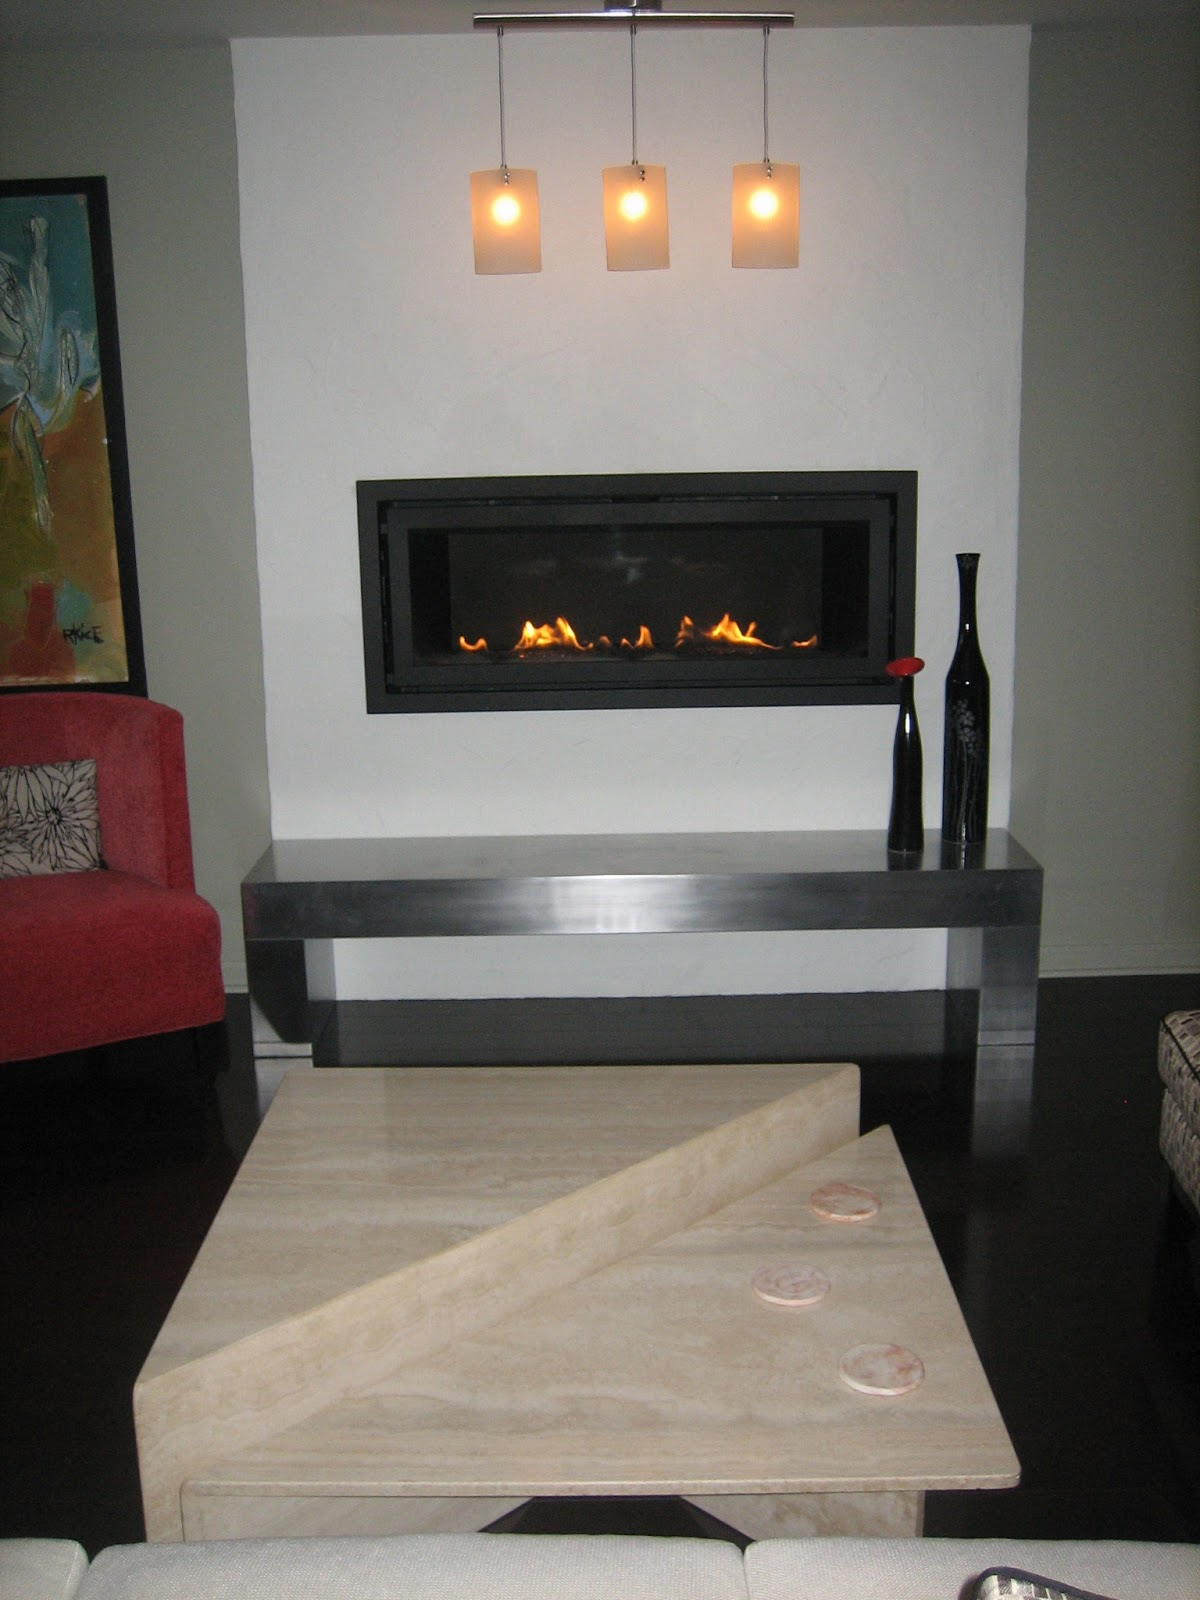 Passive Houses and Fireplaces: Bio-ethanol Ventless Fireplace